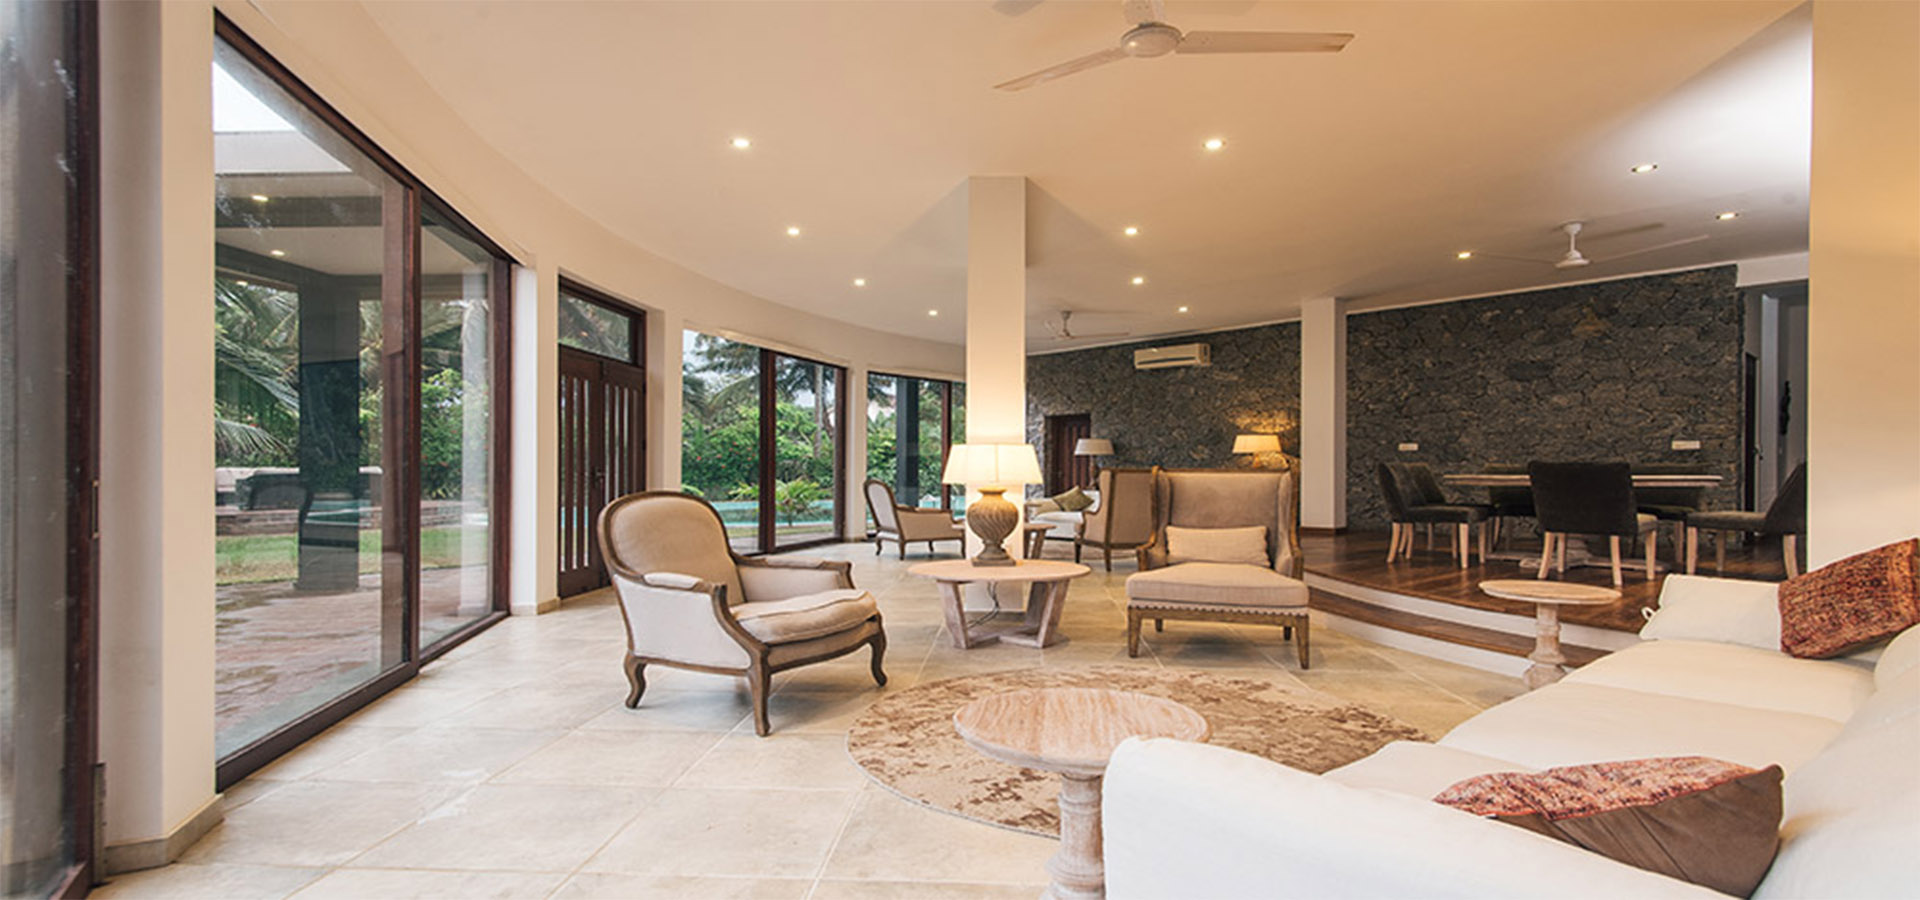 Serendipity_Hotels_living area with outdoor view at villa thuya